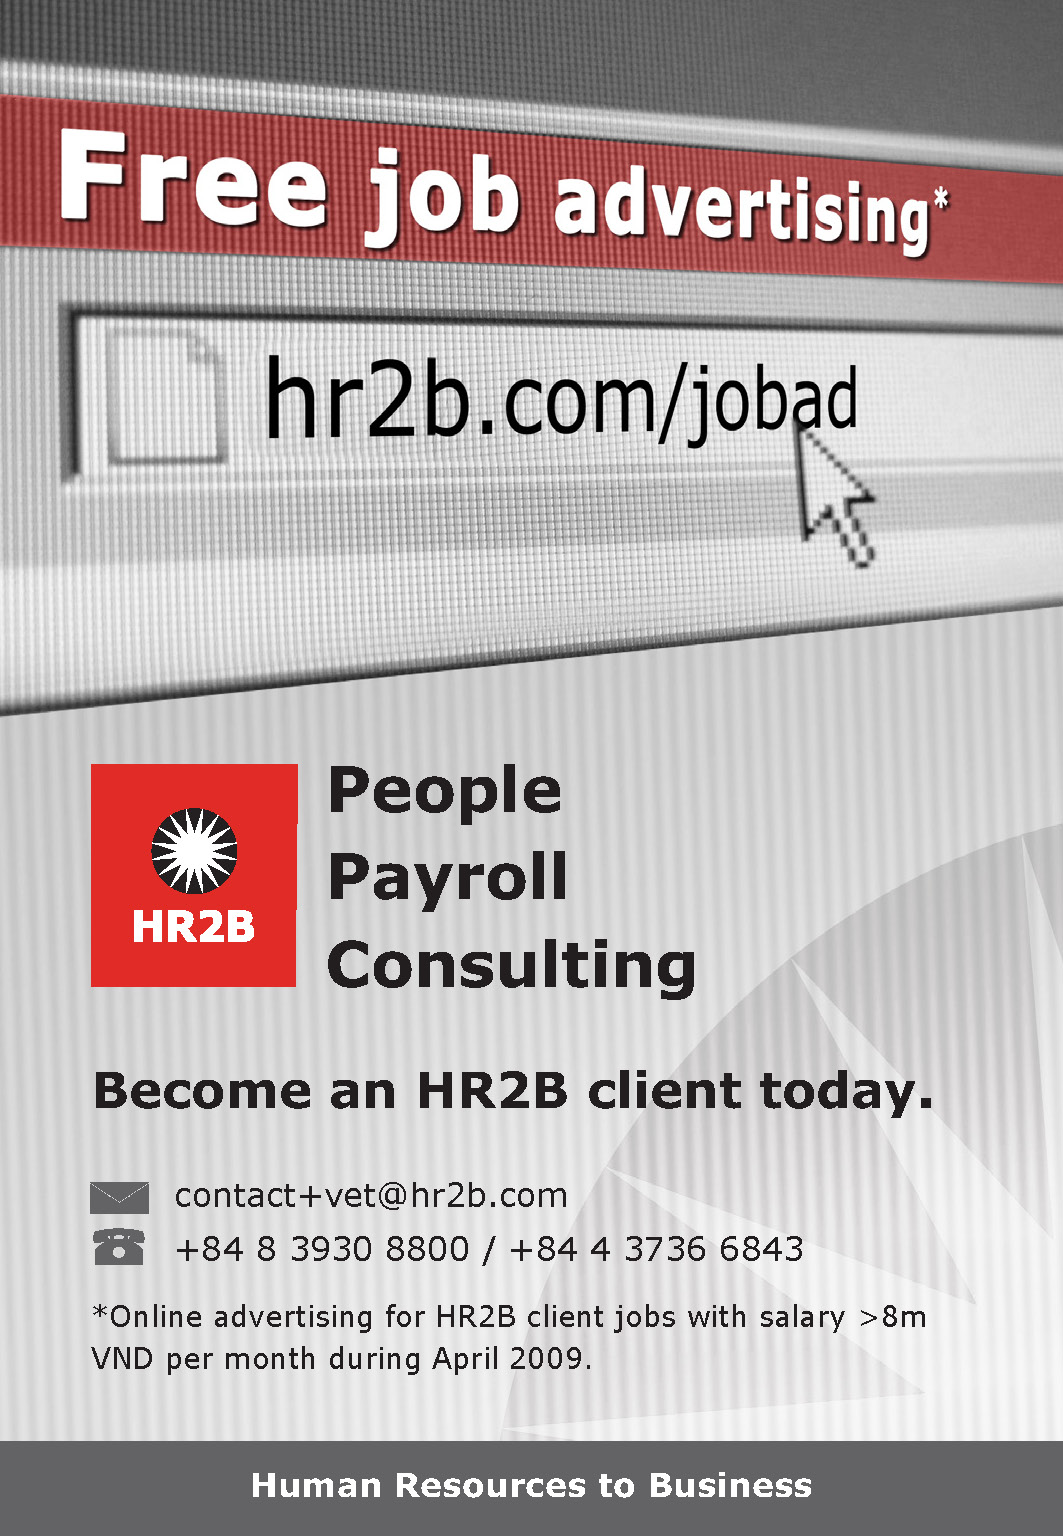 HR2B Free Job - Vietnam Economic Times